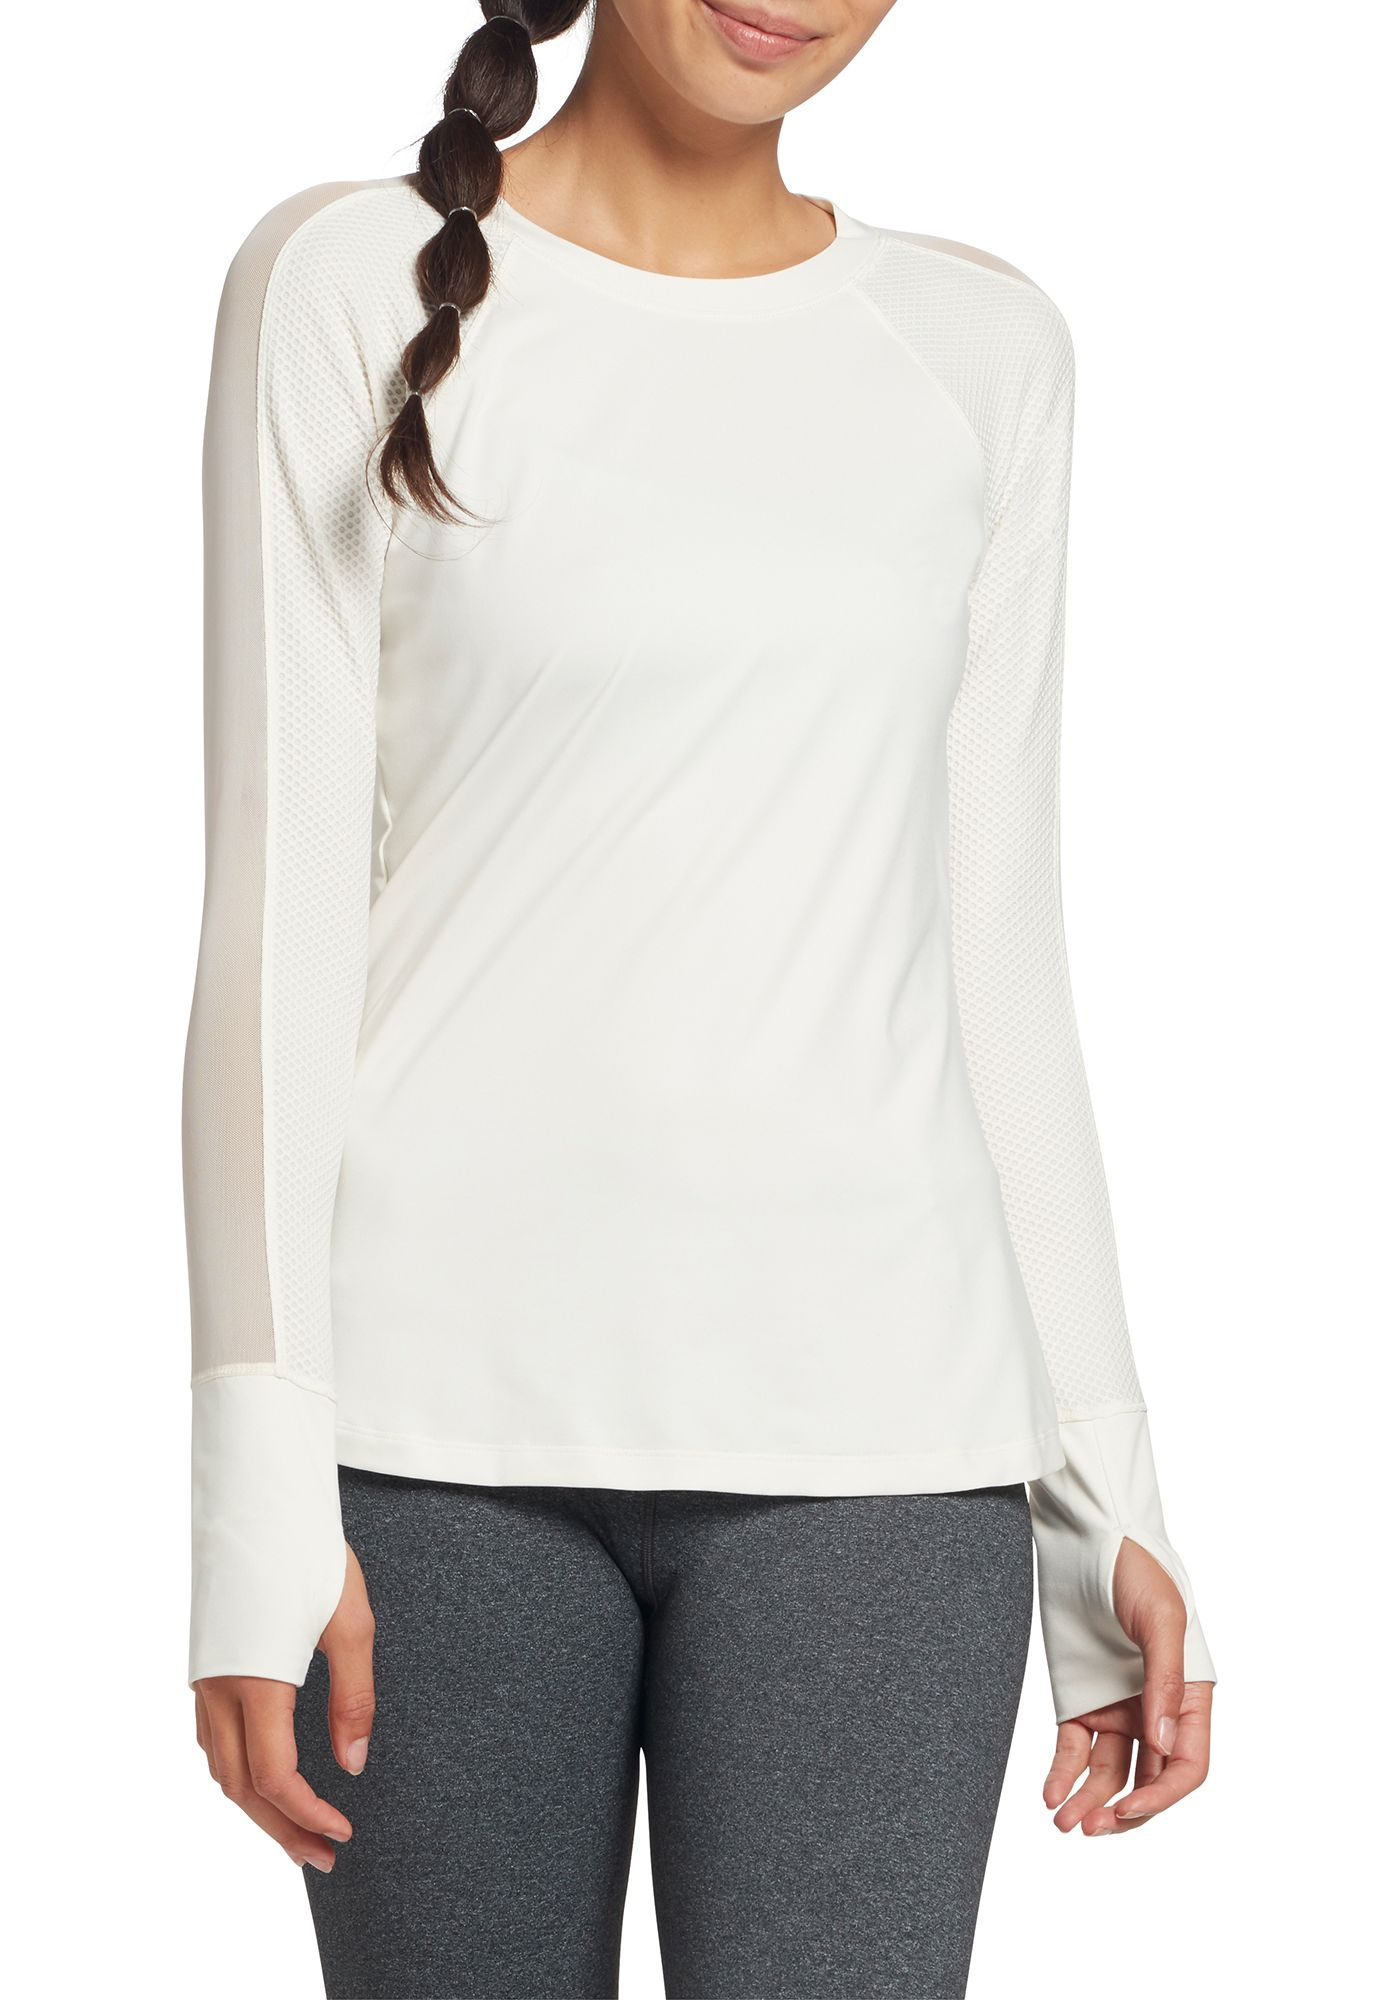 CALIA by Carrie Underwood Women's Move Mesh Panel Long Sleeve Shirt